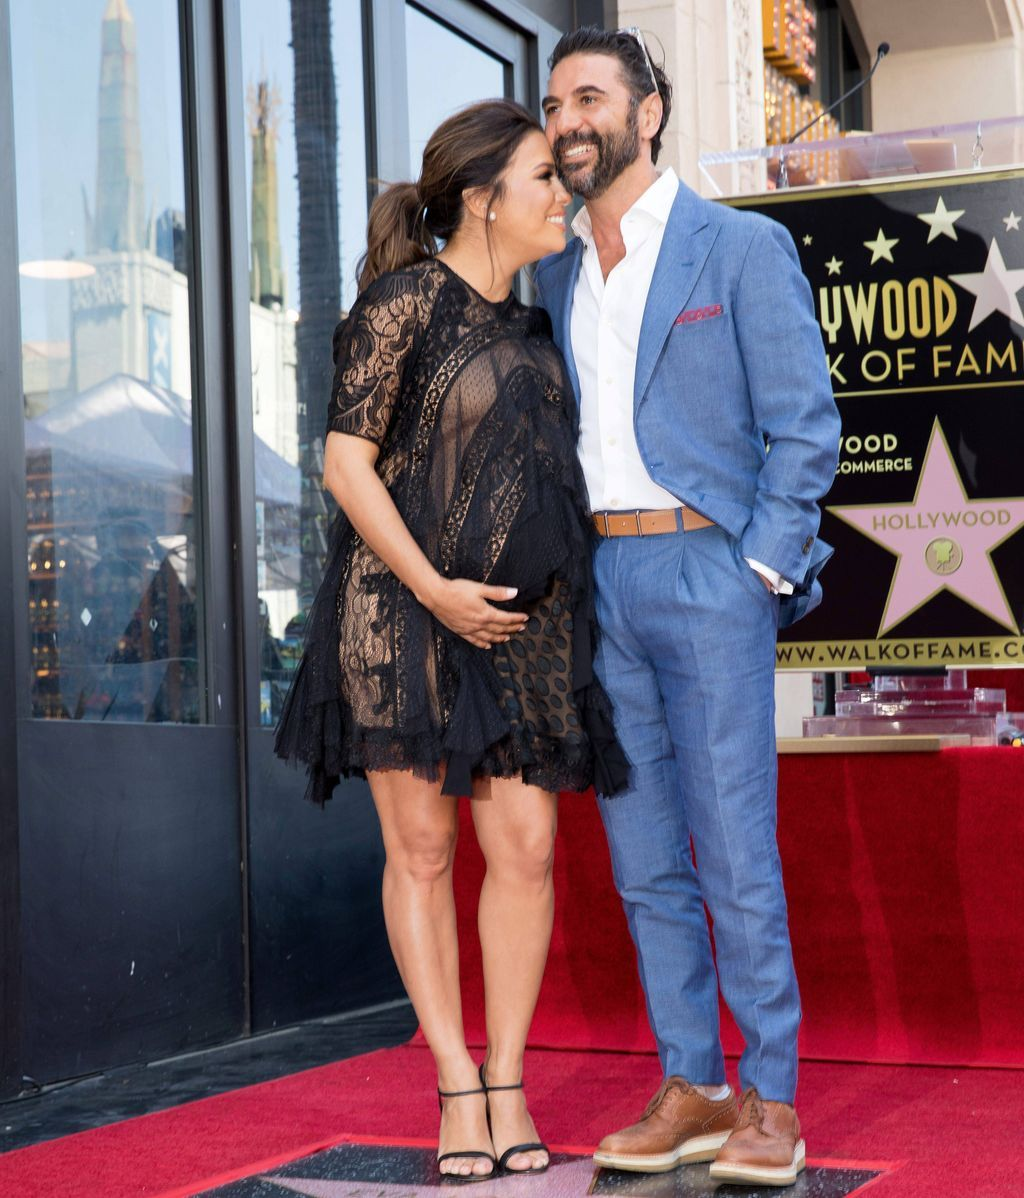 Eva Longoria and her husband Jose 'Pepe' Baston